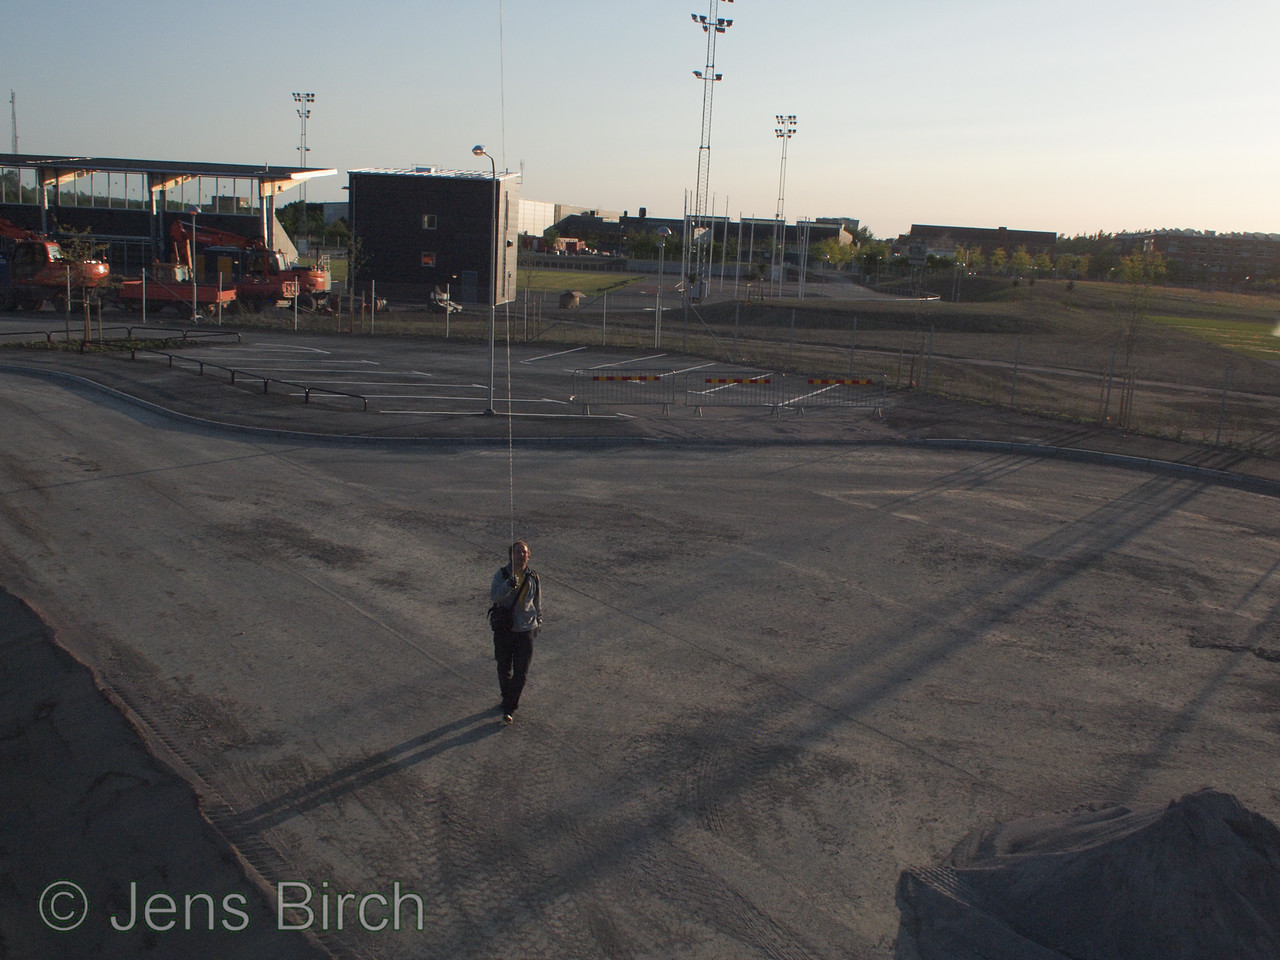 First KAP session at Campus Valla of Linköping University. Here: me with the new track field/ice skating track in the background.